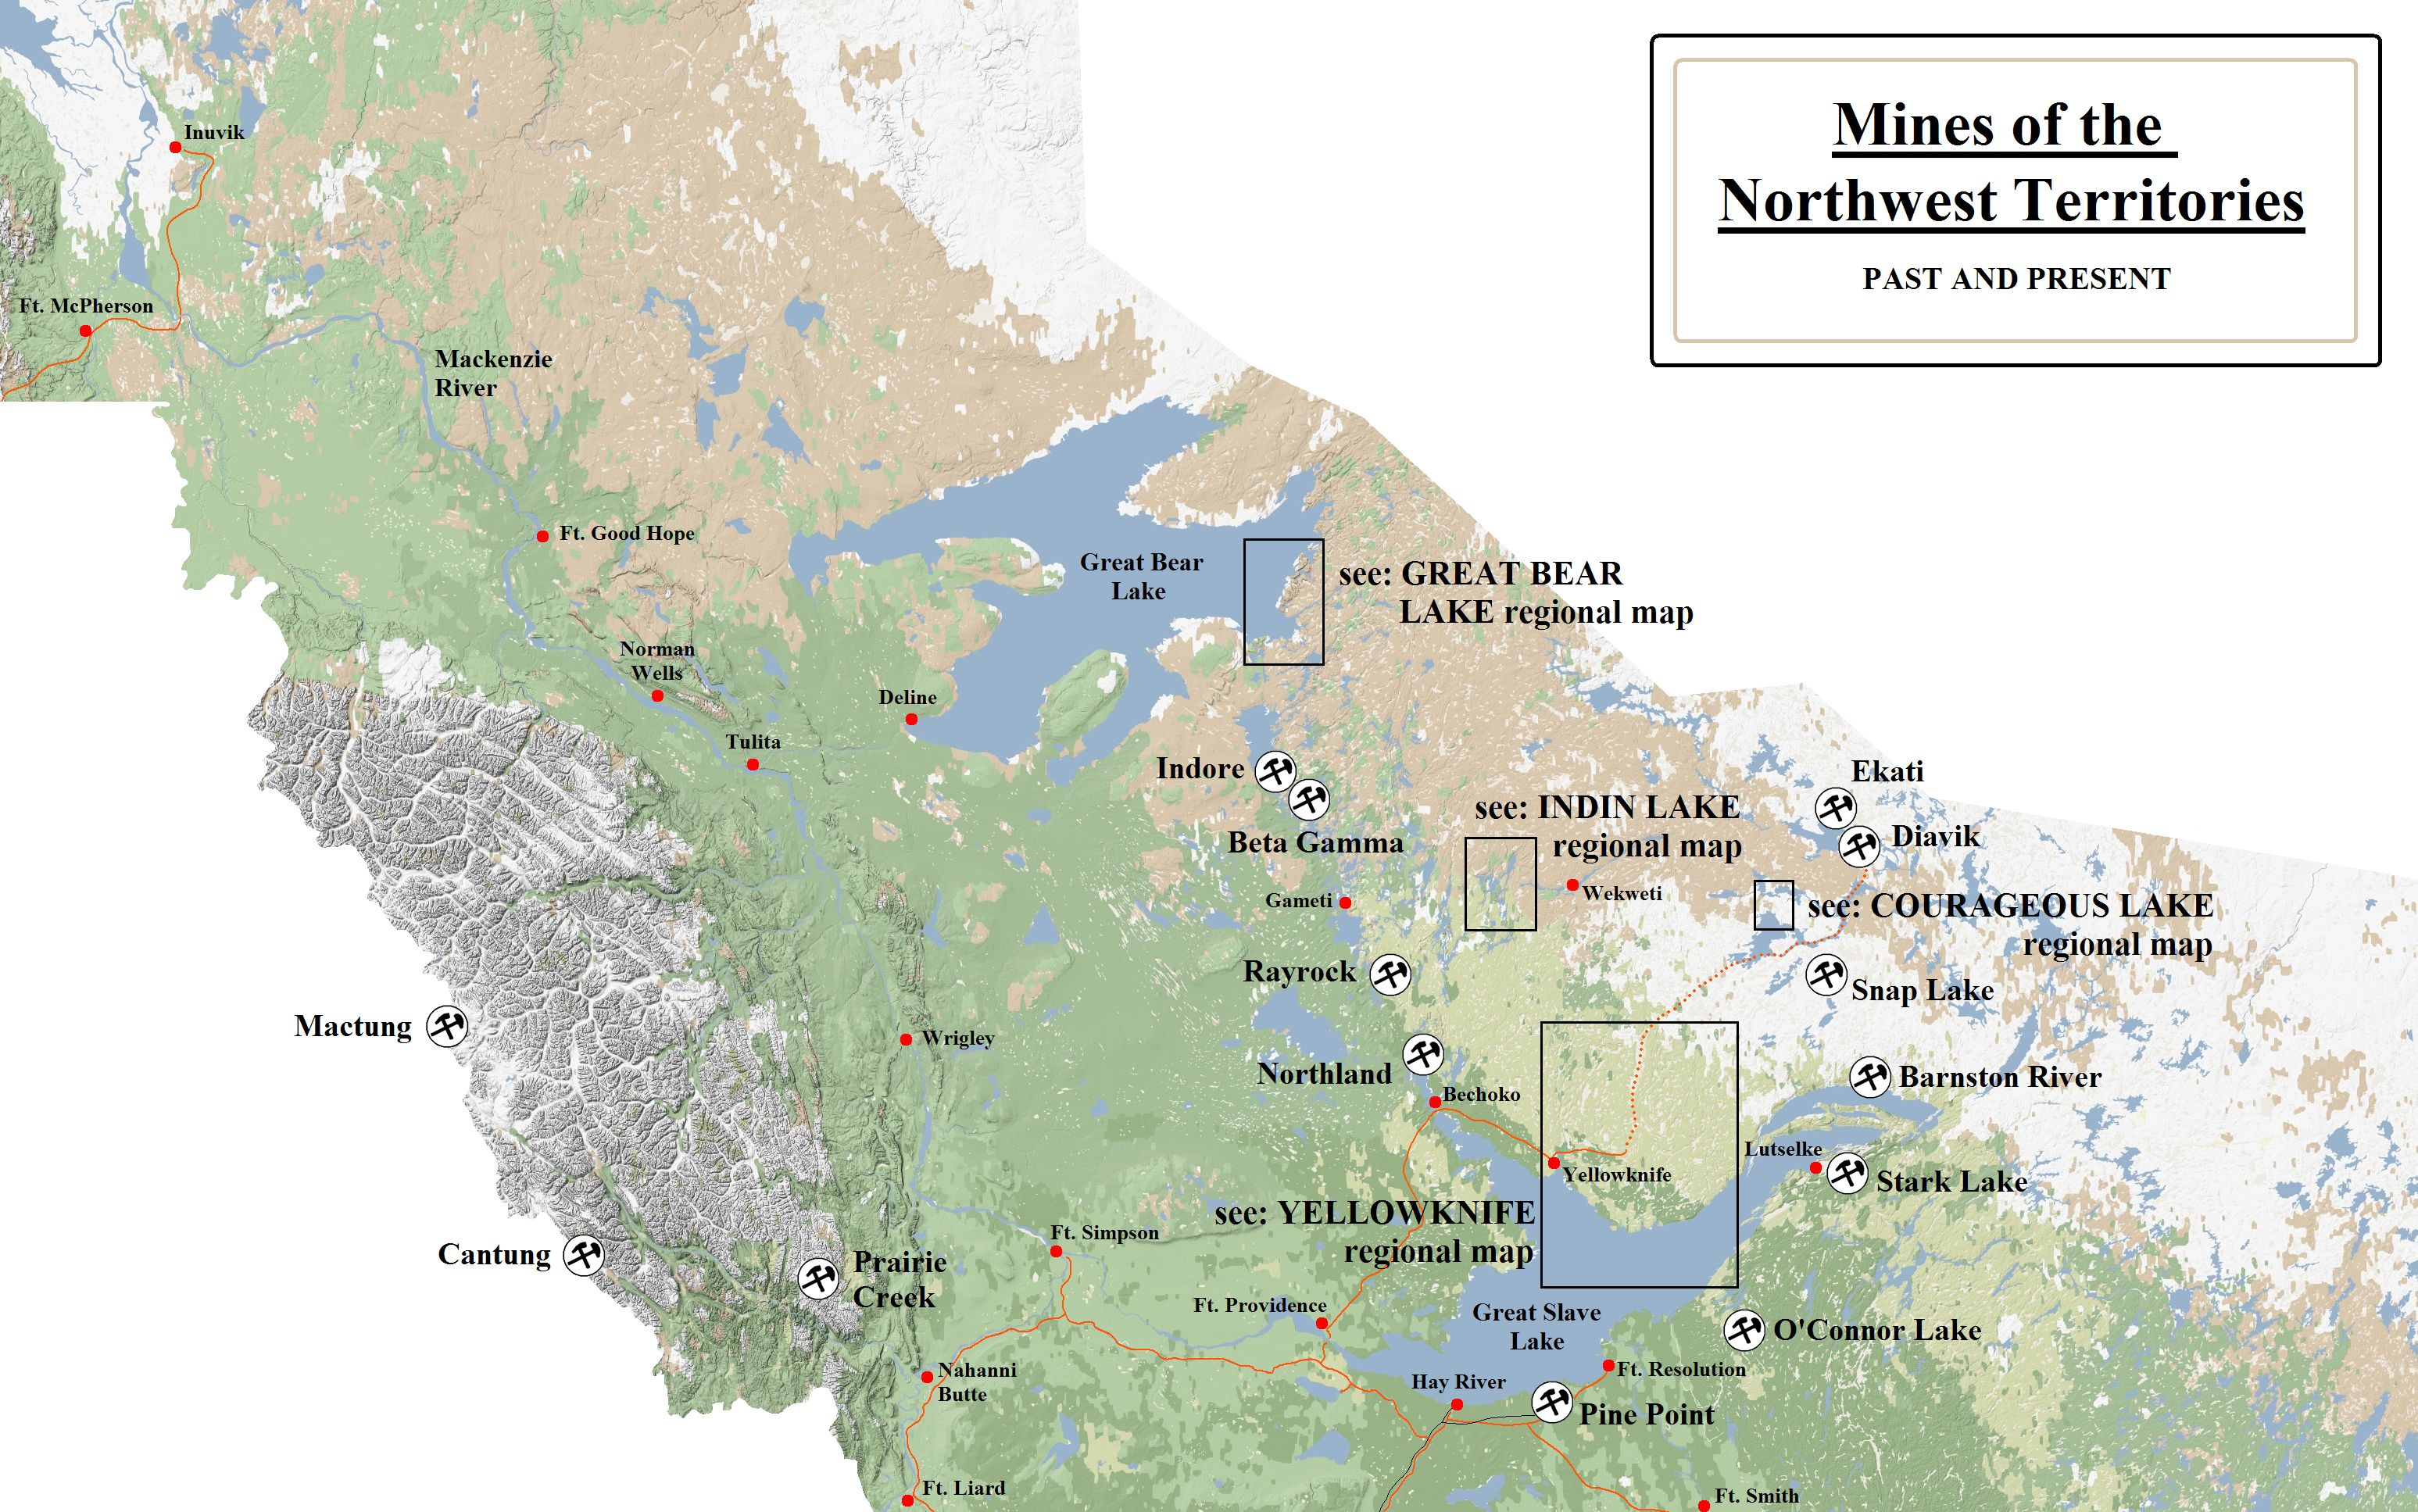 Resources - NWT & Nunavut Chamber Of Mines on